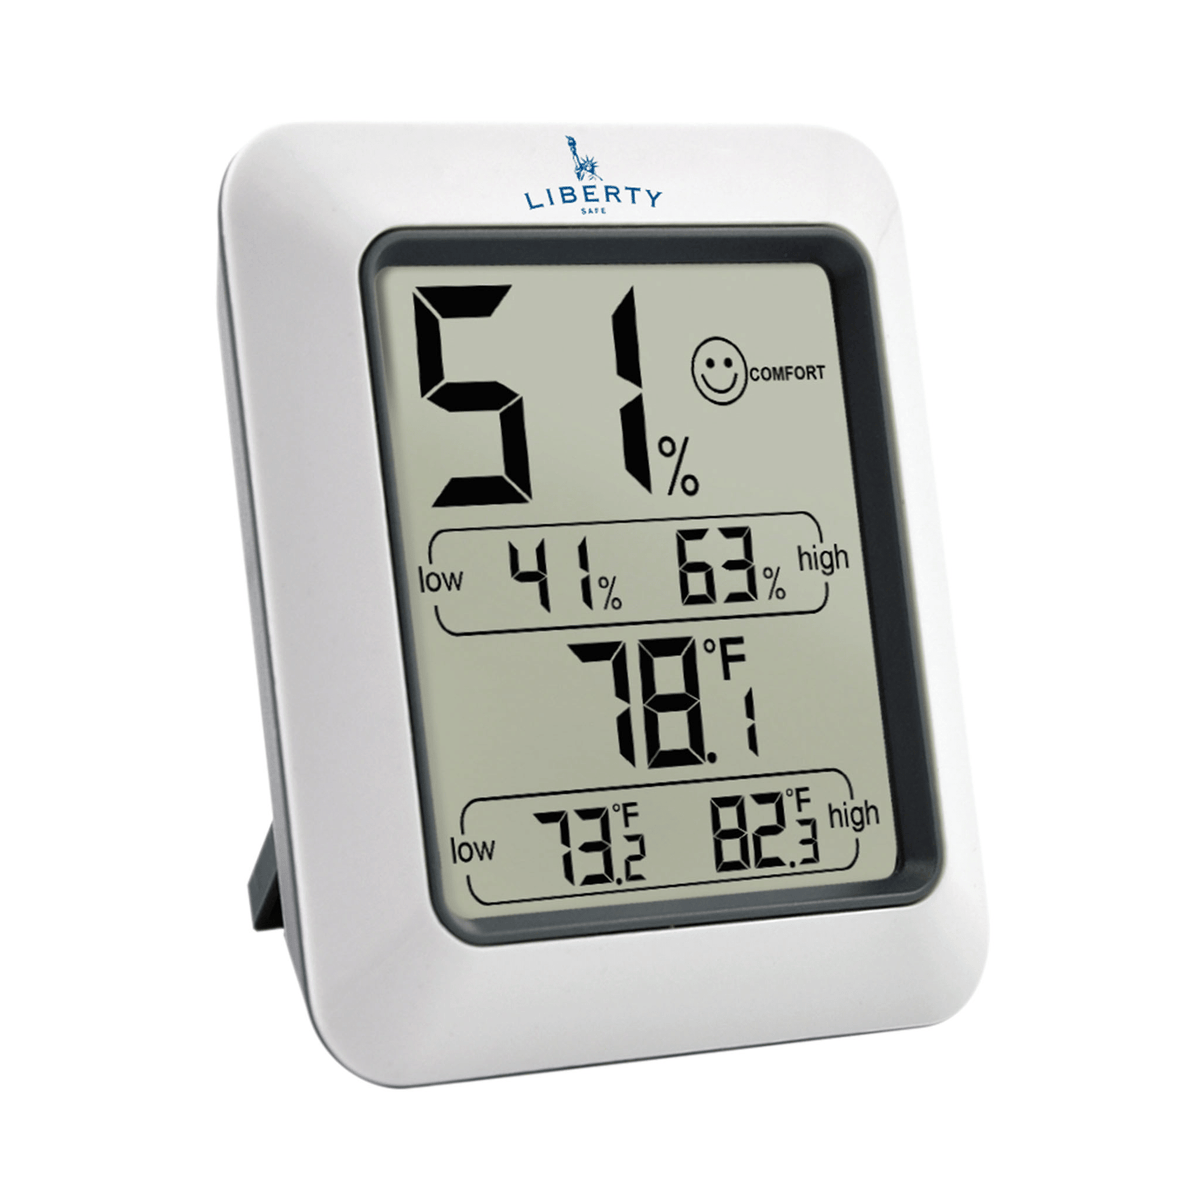 Accessory - Dehumidifier - Humidity and Temperature Monitor